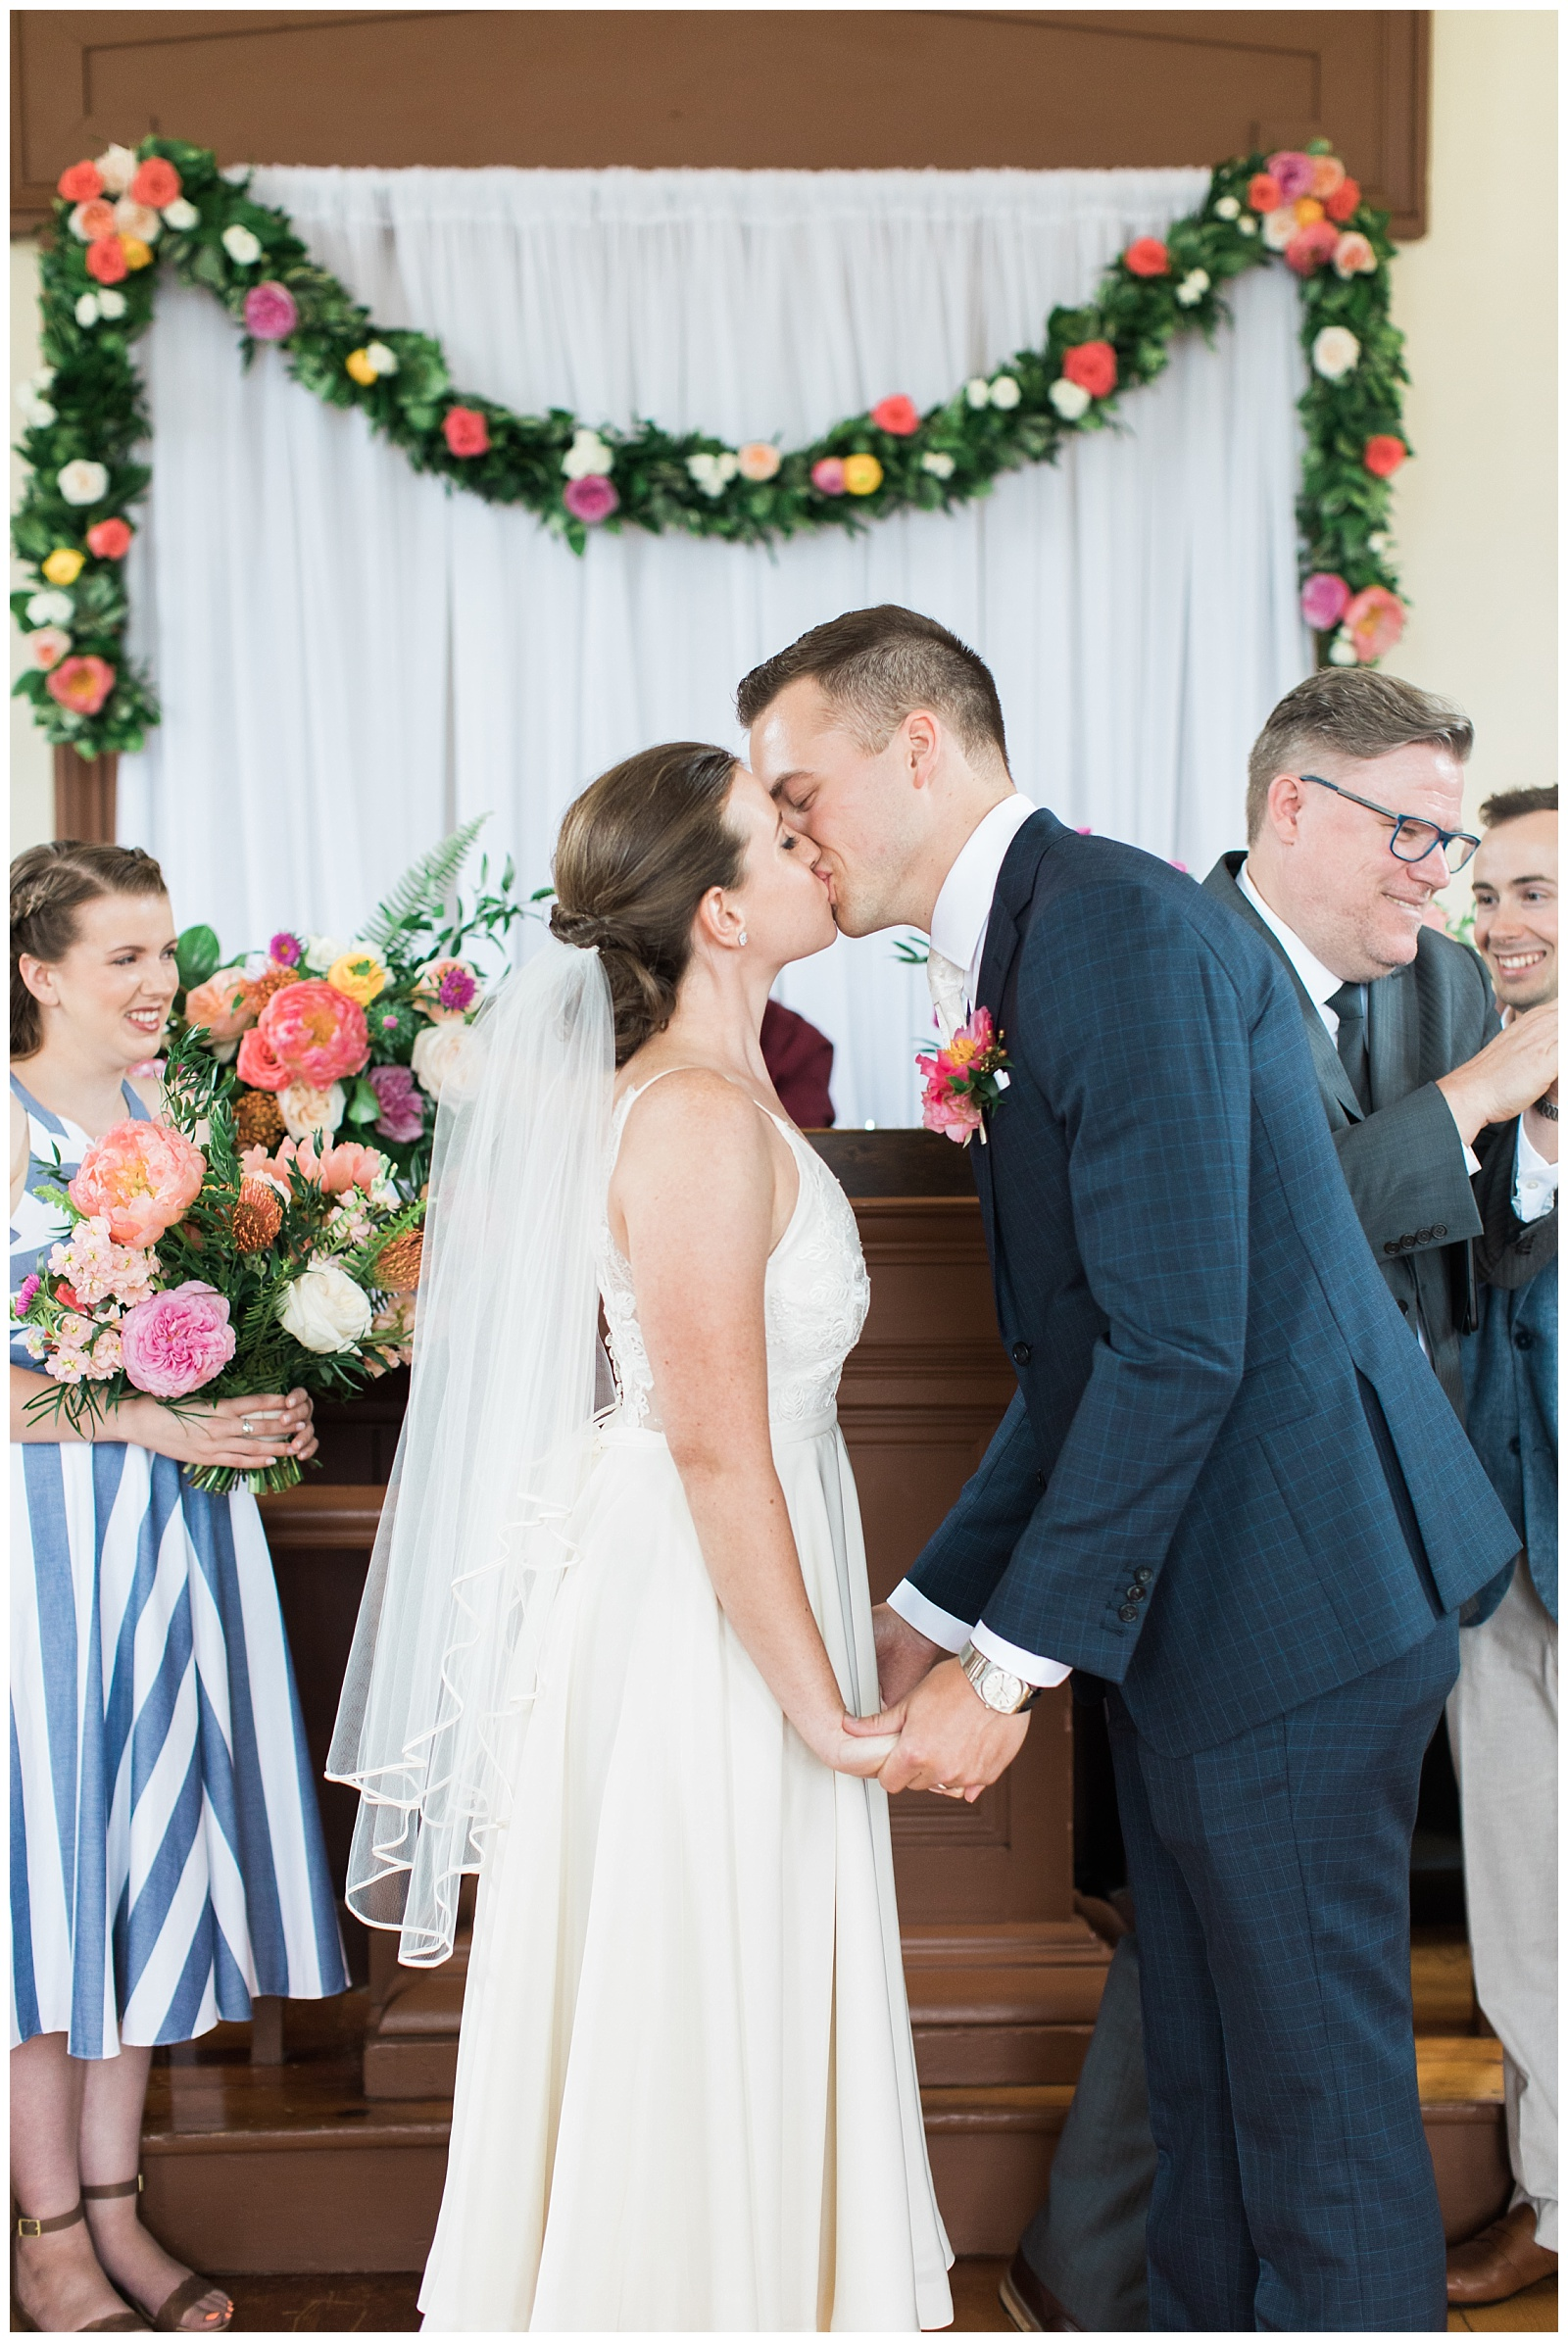 Bride and groom kiss at alter at Guelph Ontario Wedding | Ontario Wedding Photographer | Toronto Wedding Photographer | 3photography